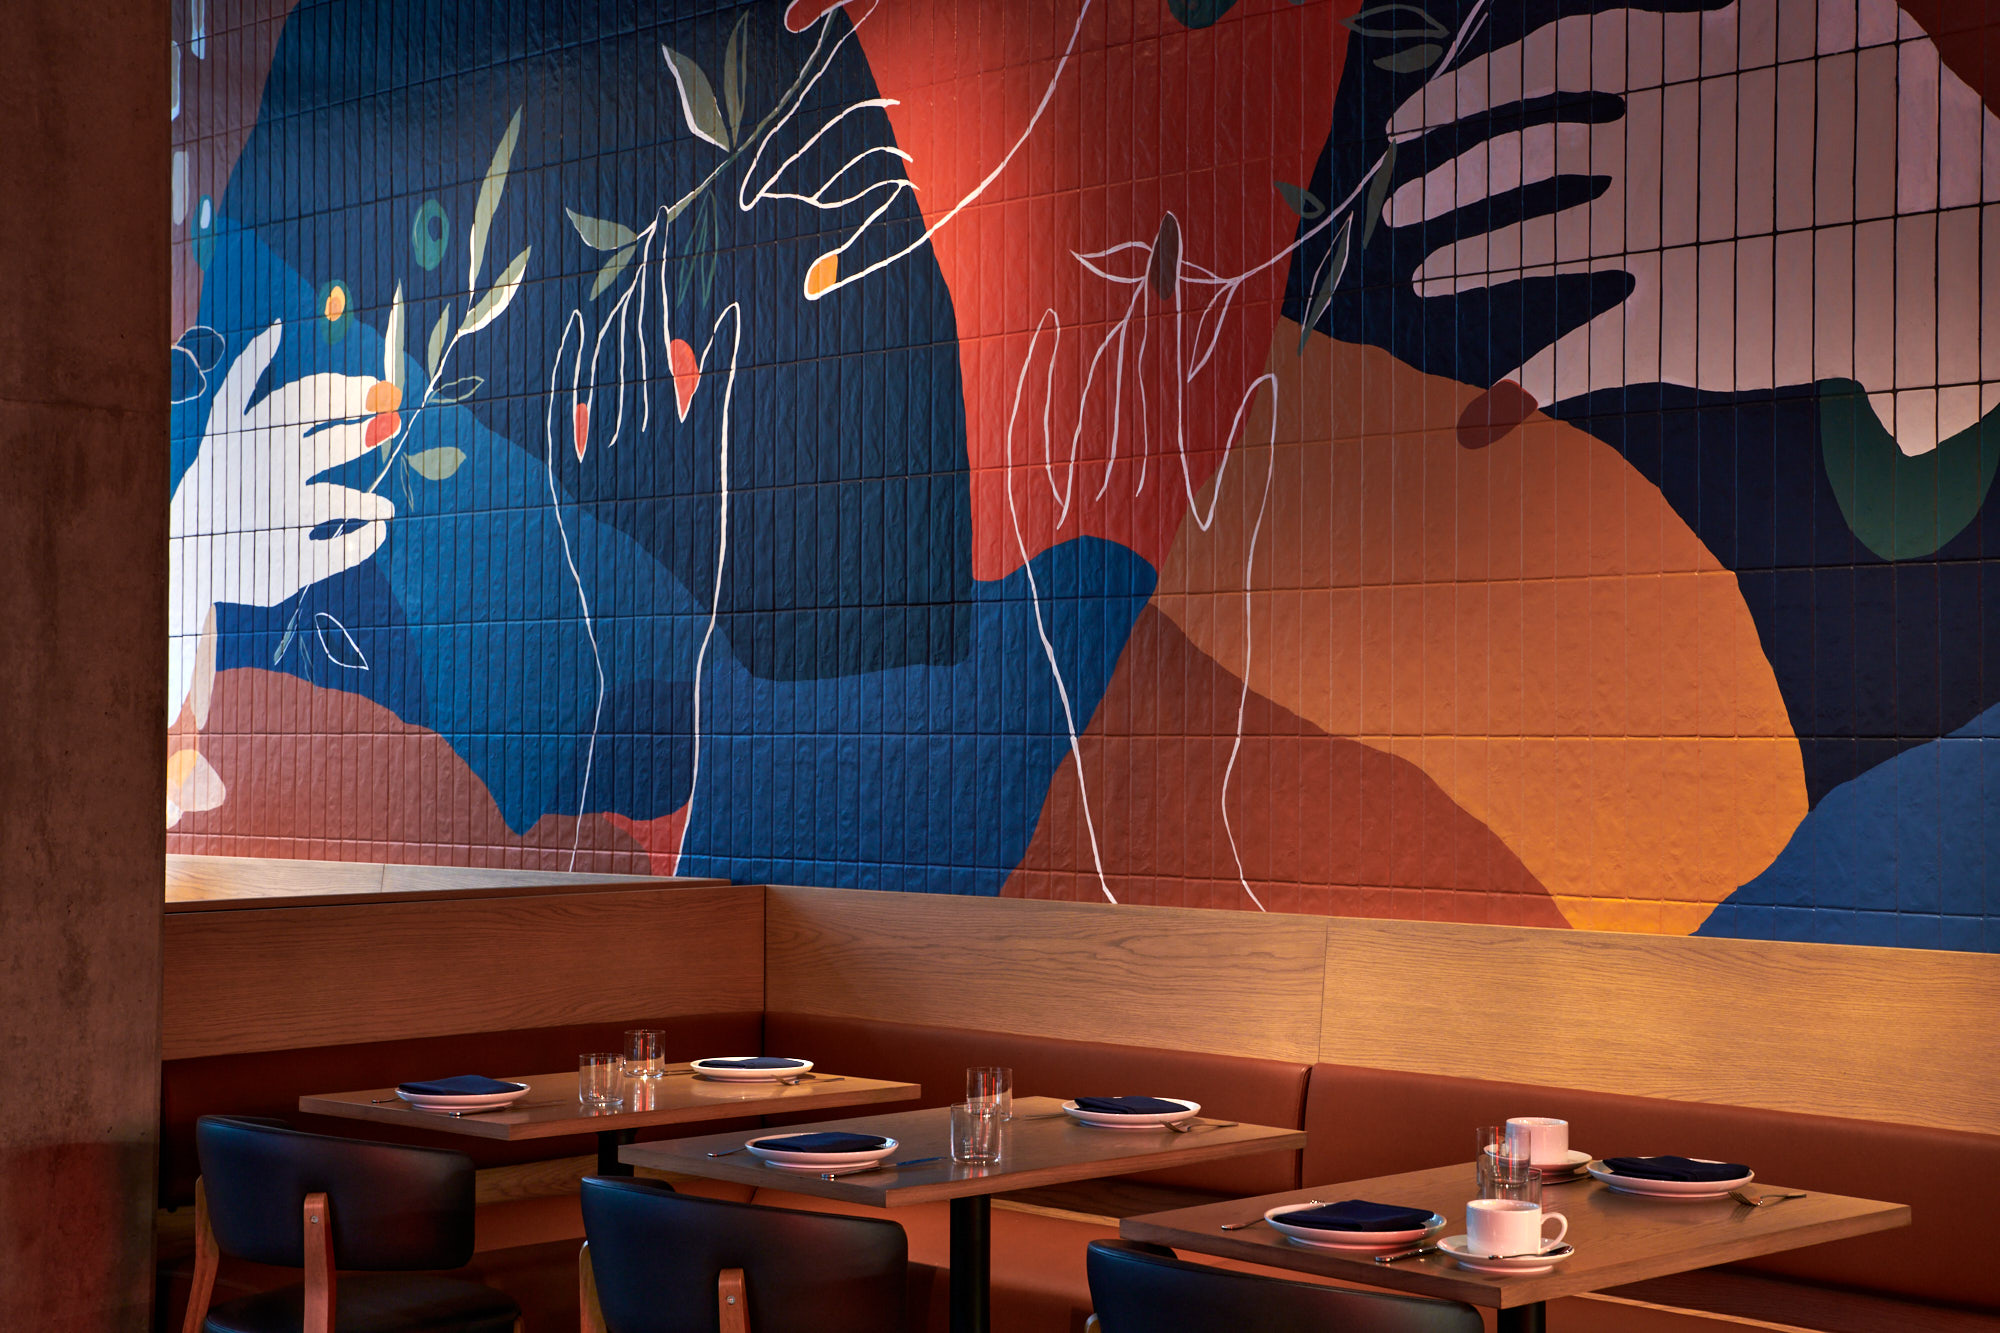 A mural with reds, oranges, and blues shows disembodied hands reaching for olive leaves. The dining room at Masia has a handful of two-tops on a banquette near the mural